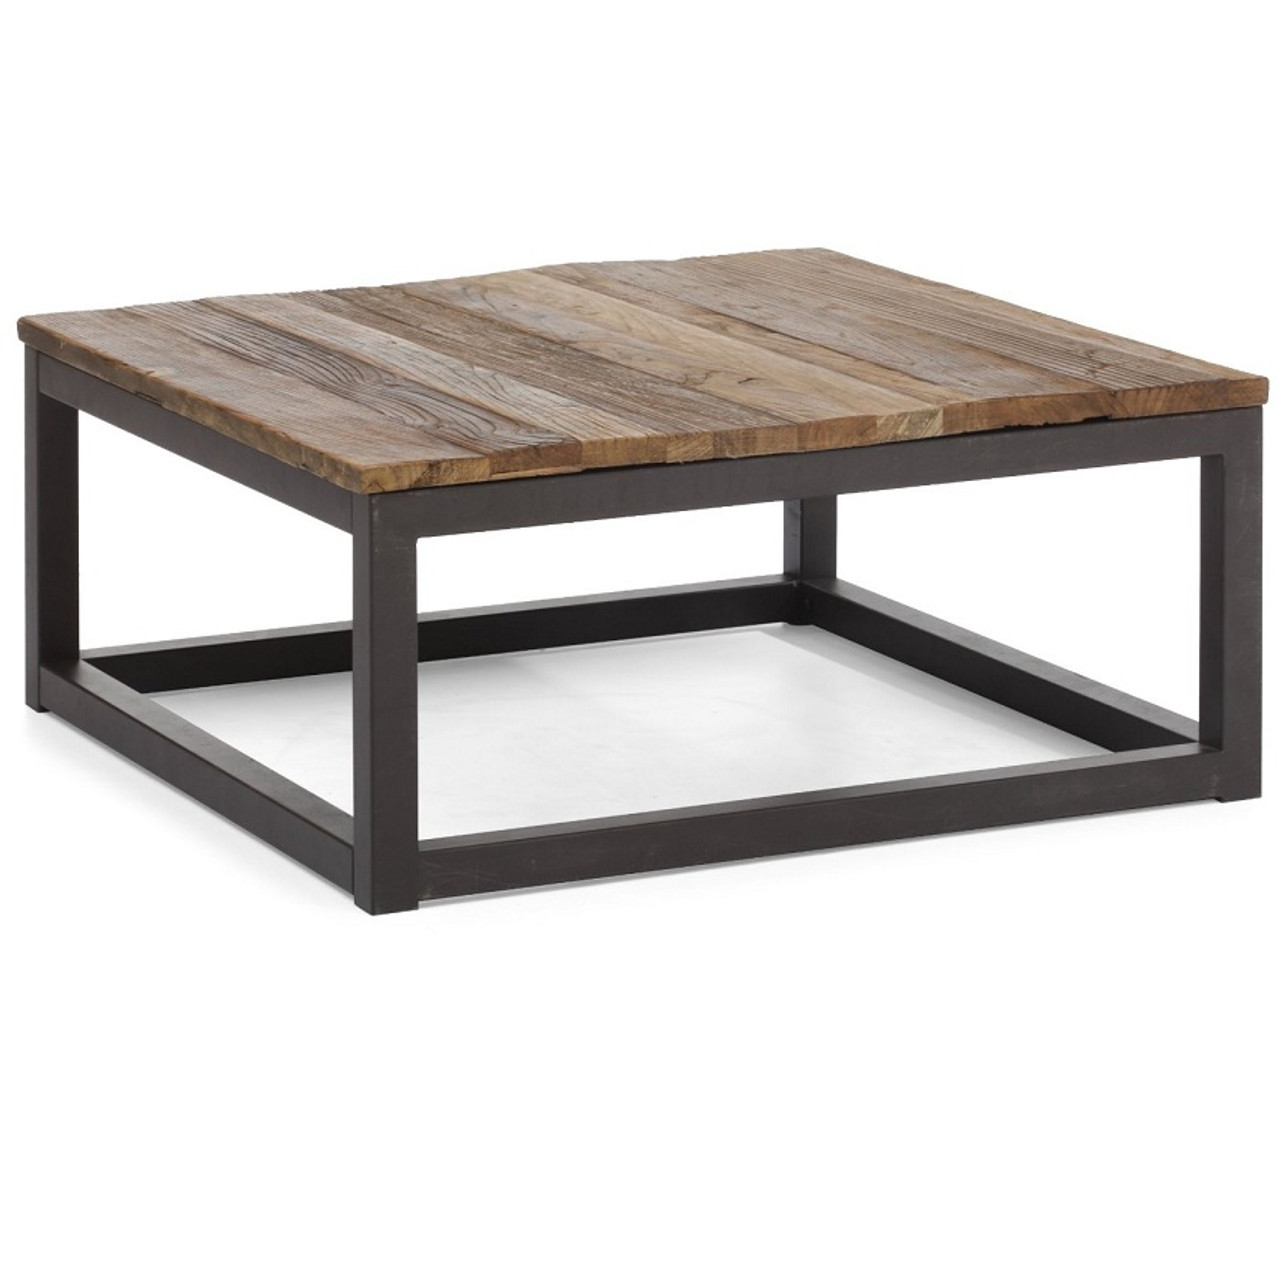 square wood coffee table Civic Wood and Metal Square Coffee Table   Zin Home square wood coffee table